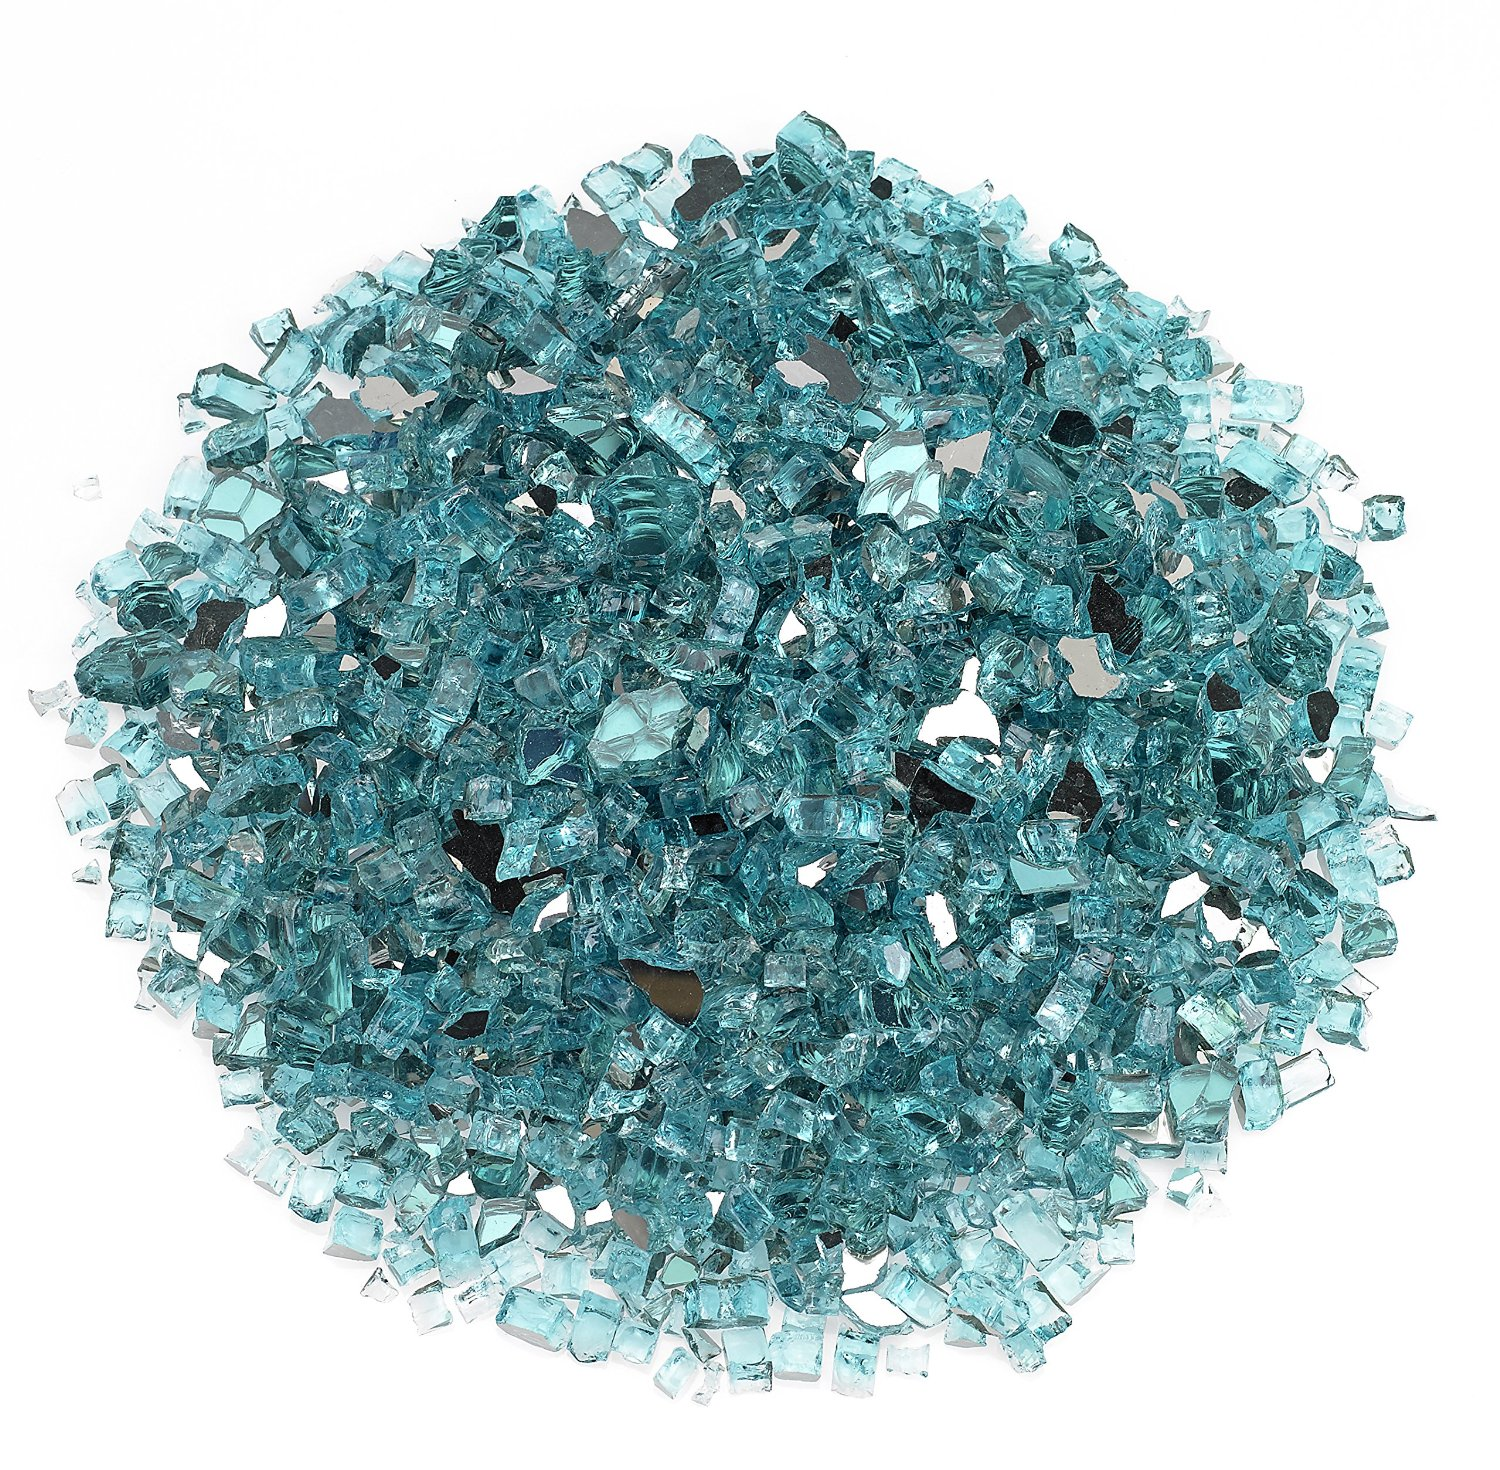 Midwest Hearth Fire Glass | 10-Pound | Beautiful Reflective Fireglass and Beads for Natural or Propane Fire Pit, Fireplace, or Gas Log Sets | American Made in USA (1/4-Inch Crushed, Tropical Teal)